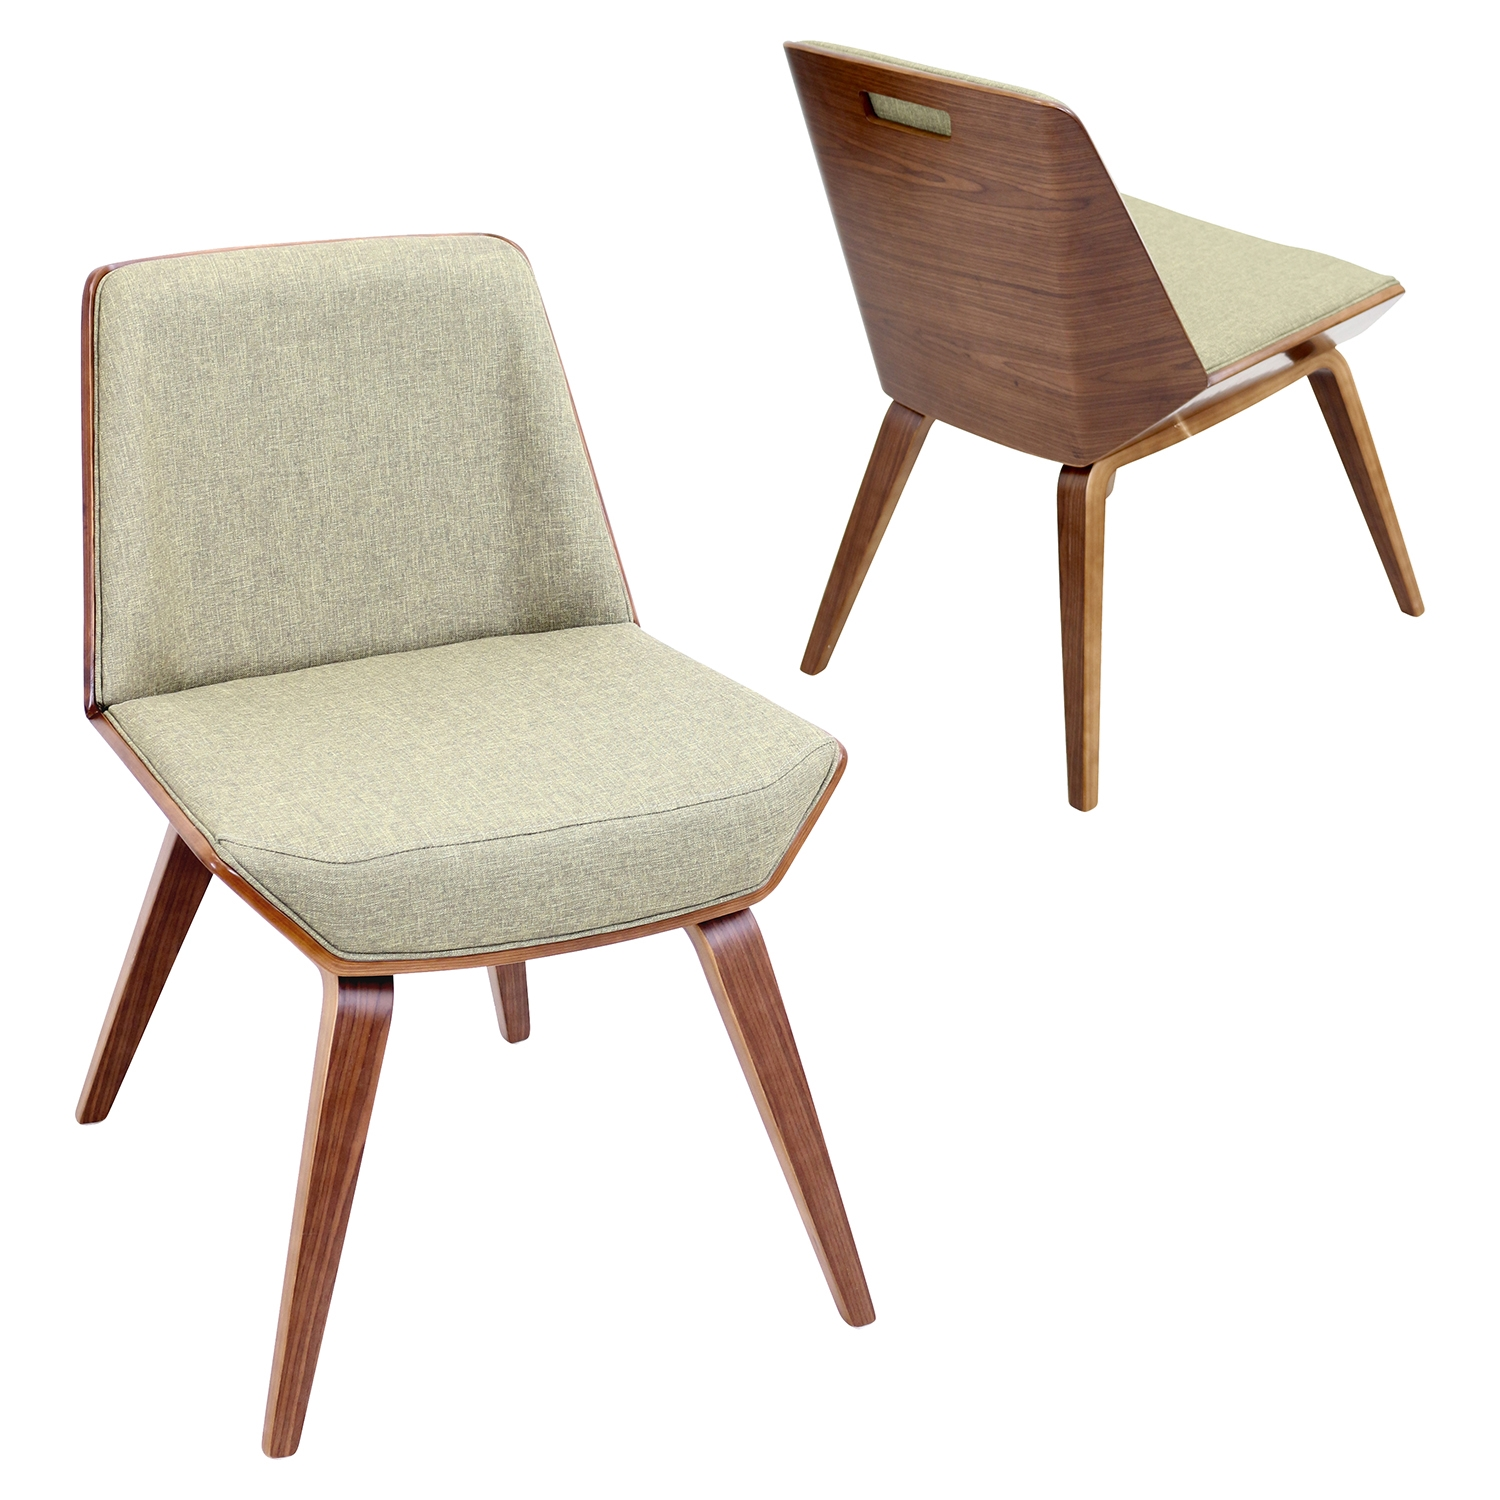 Corazza Dining Chair - Green - LMS-CH-CRZZ-WL-GN